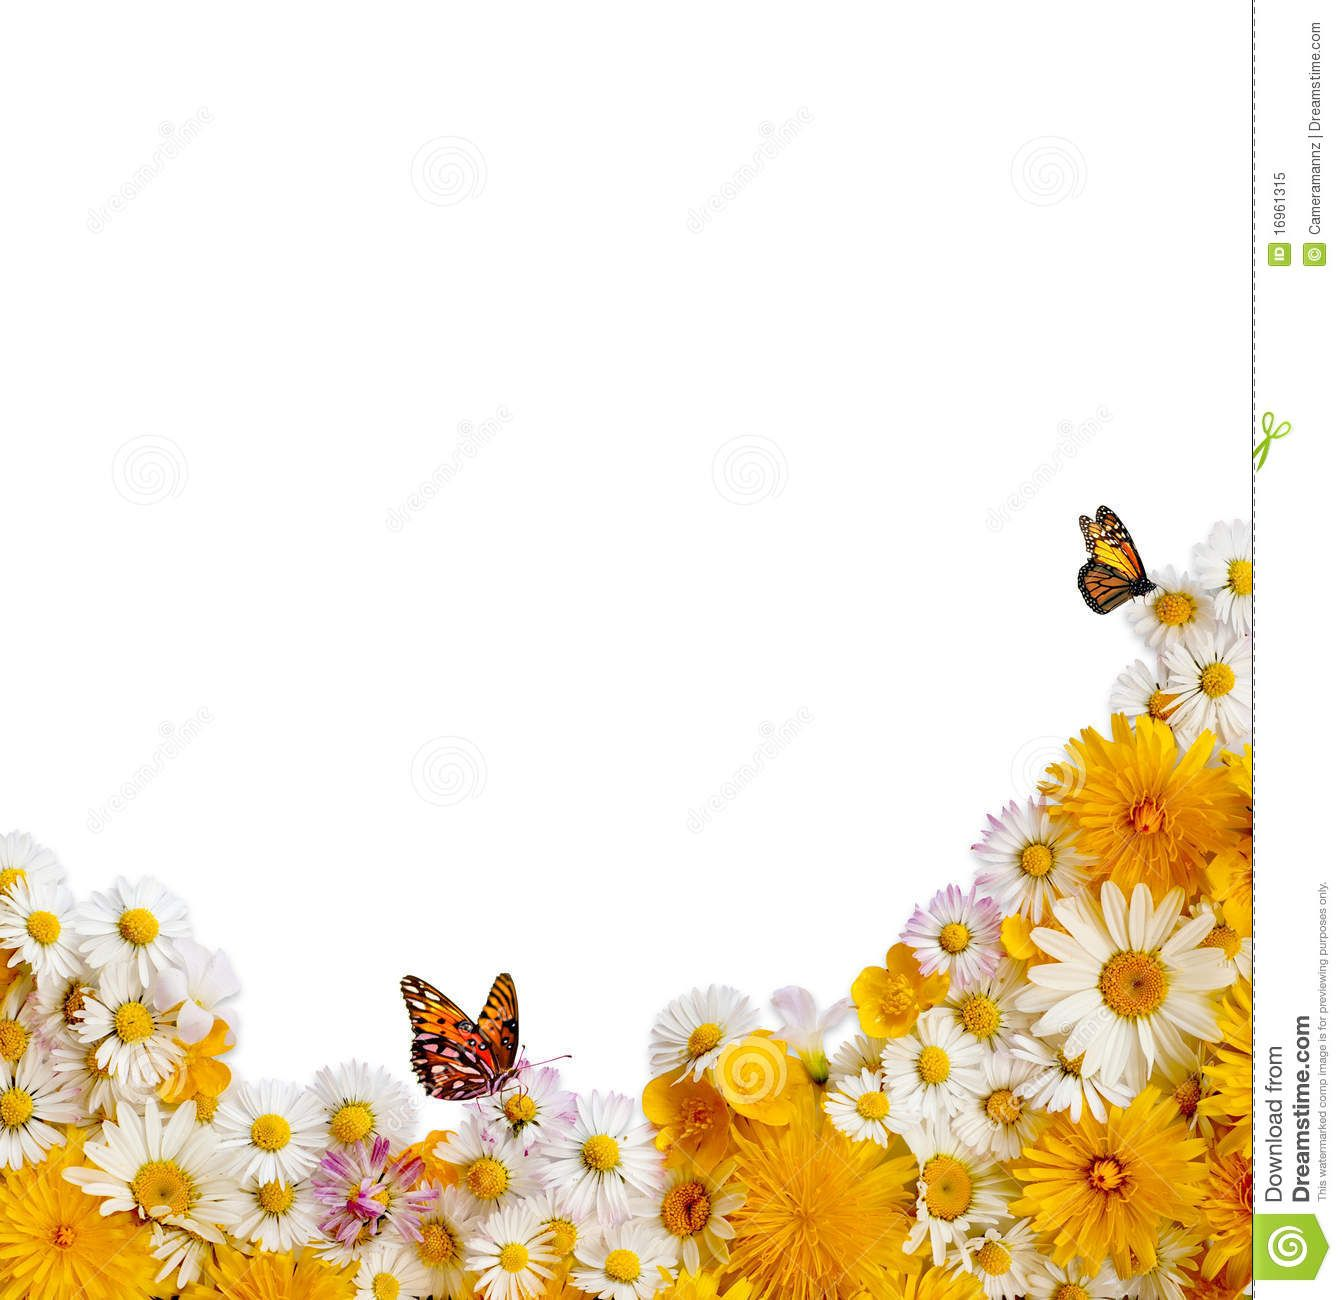 Flower borders images free google search borders and frames flower borders images free google search flower borders flower clipart animated christmas pictures mightylinksfo